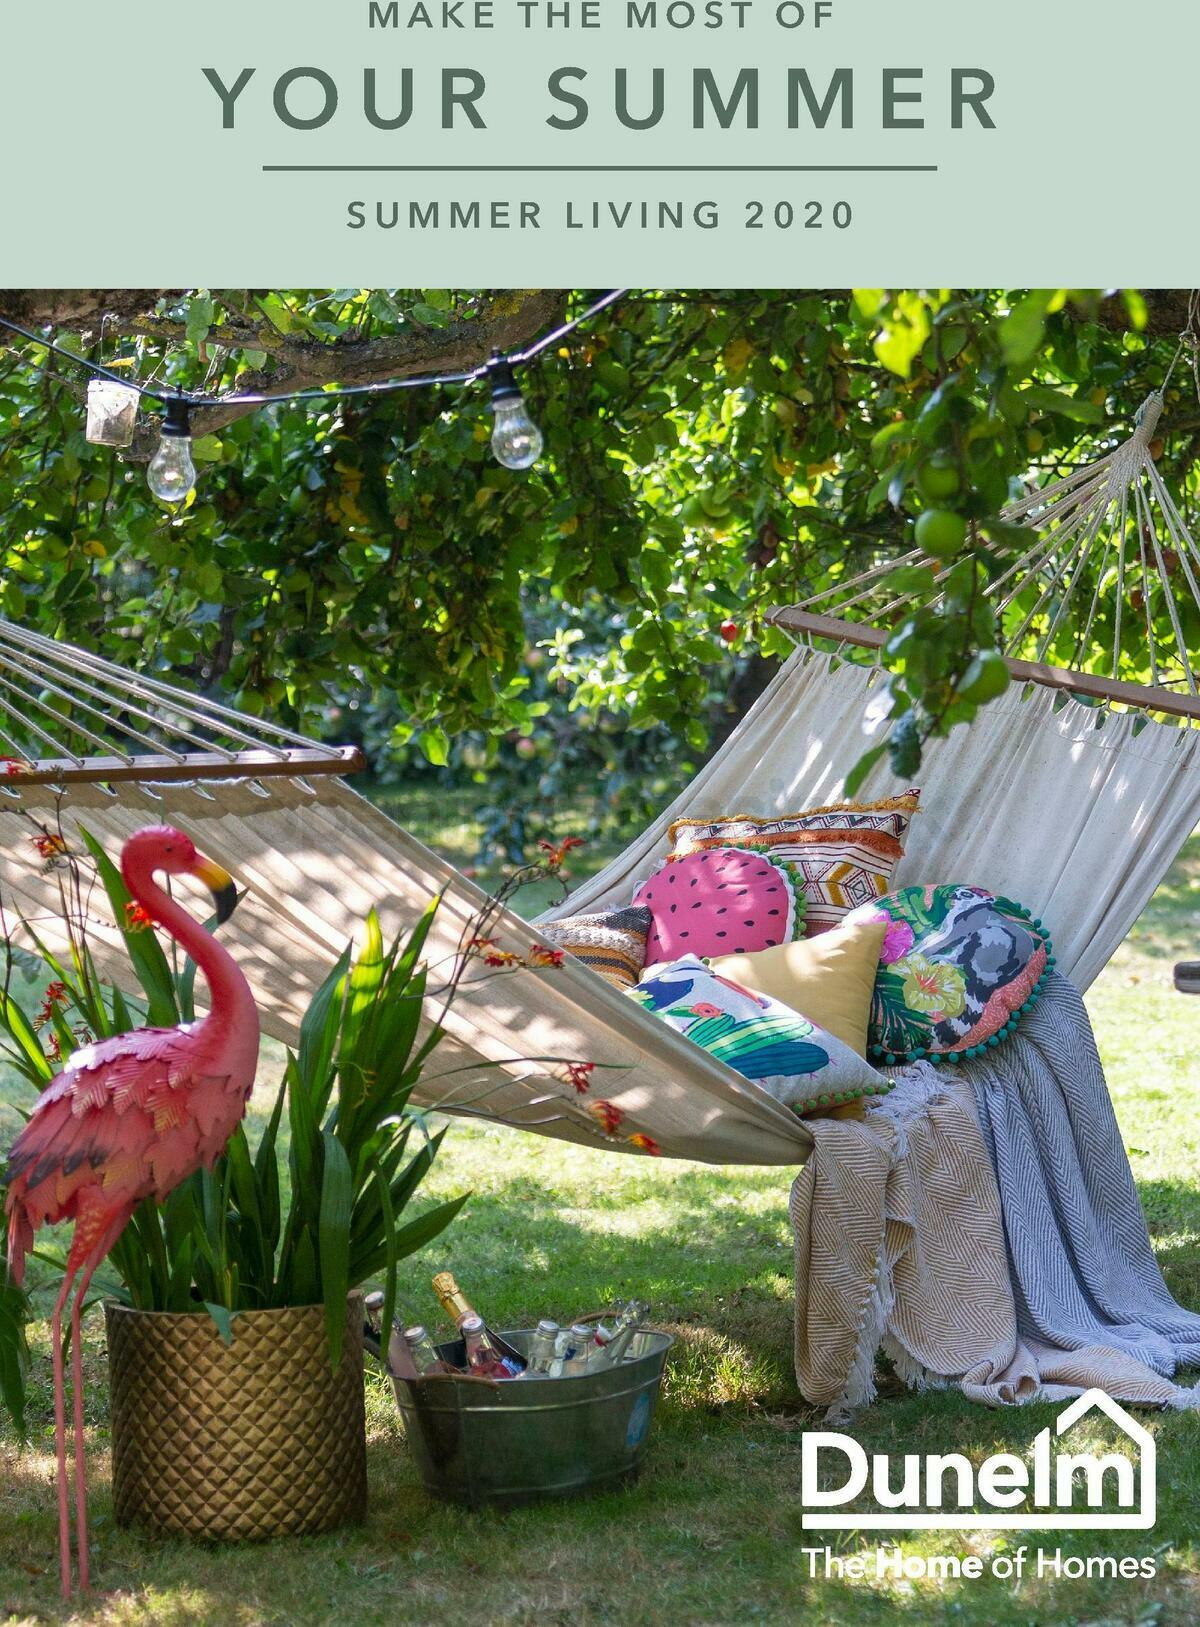 Dunelm Summer Living Offers from May 1